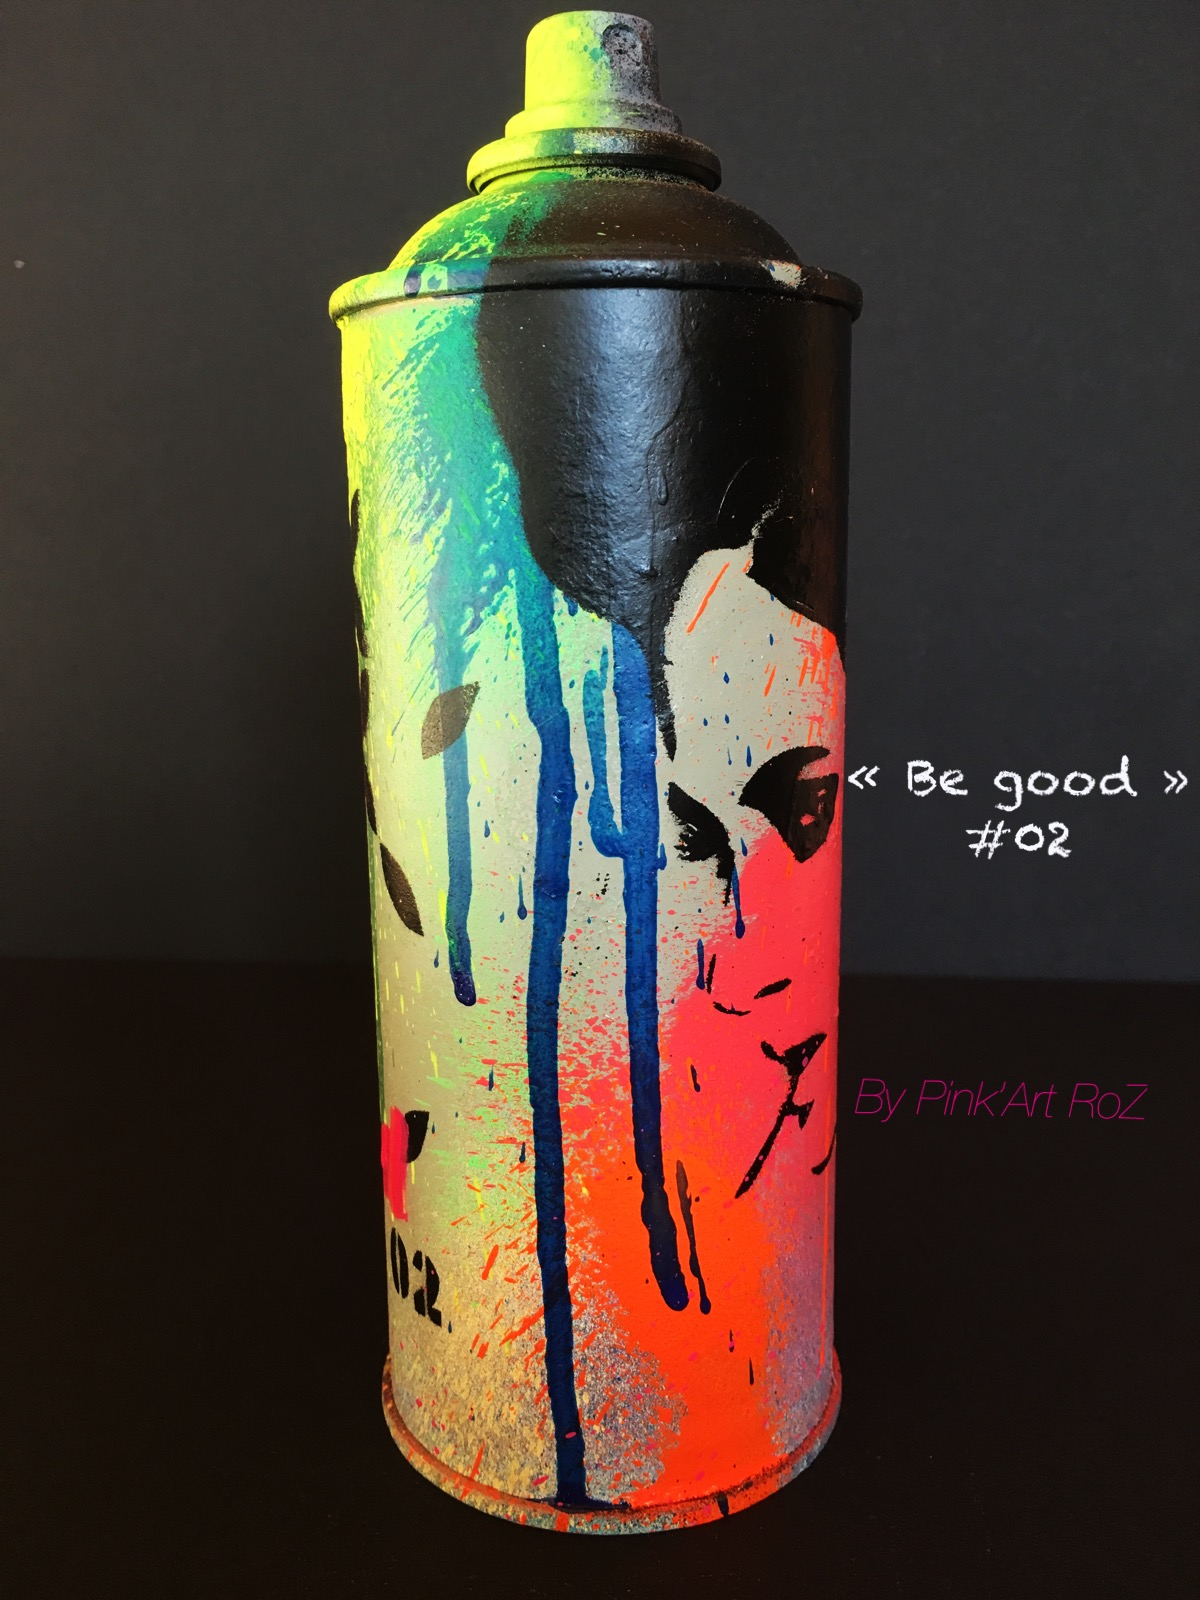 02 SPRAY BE GOOD PINKARTROZ